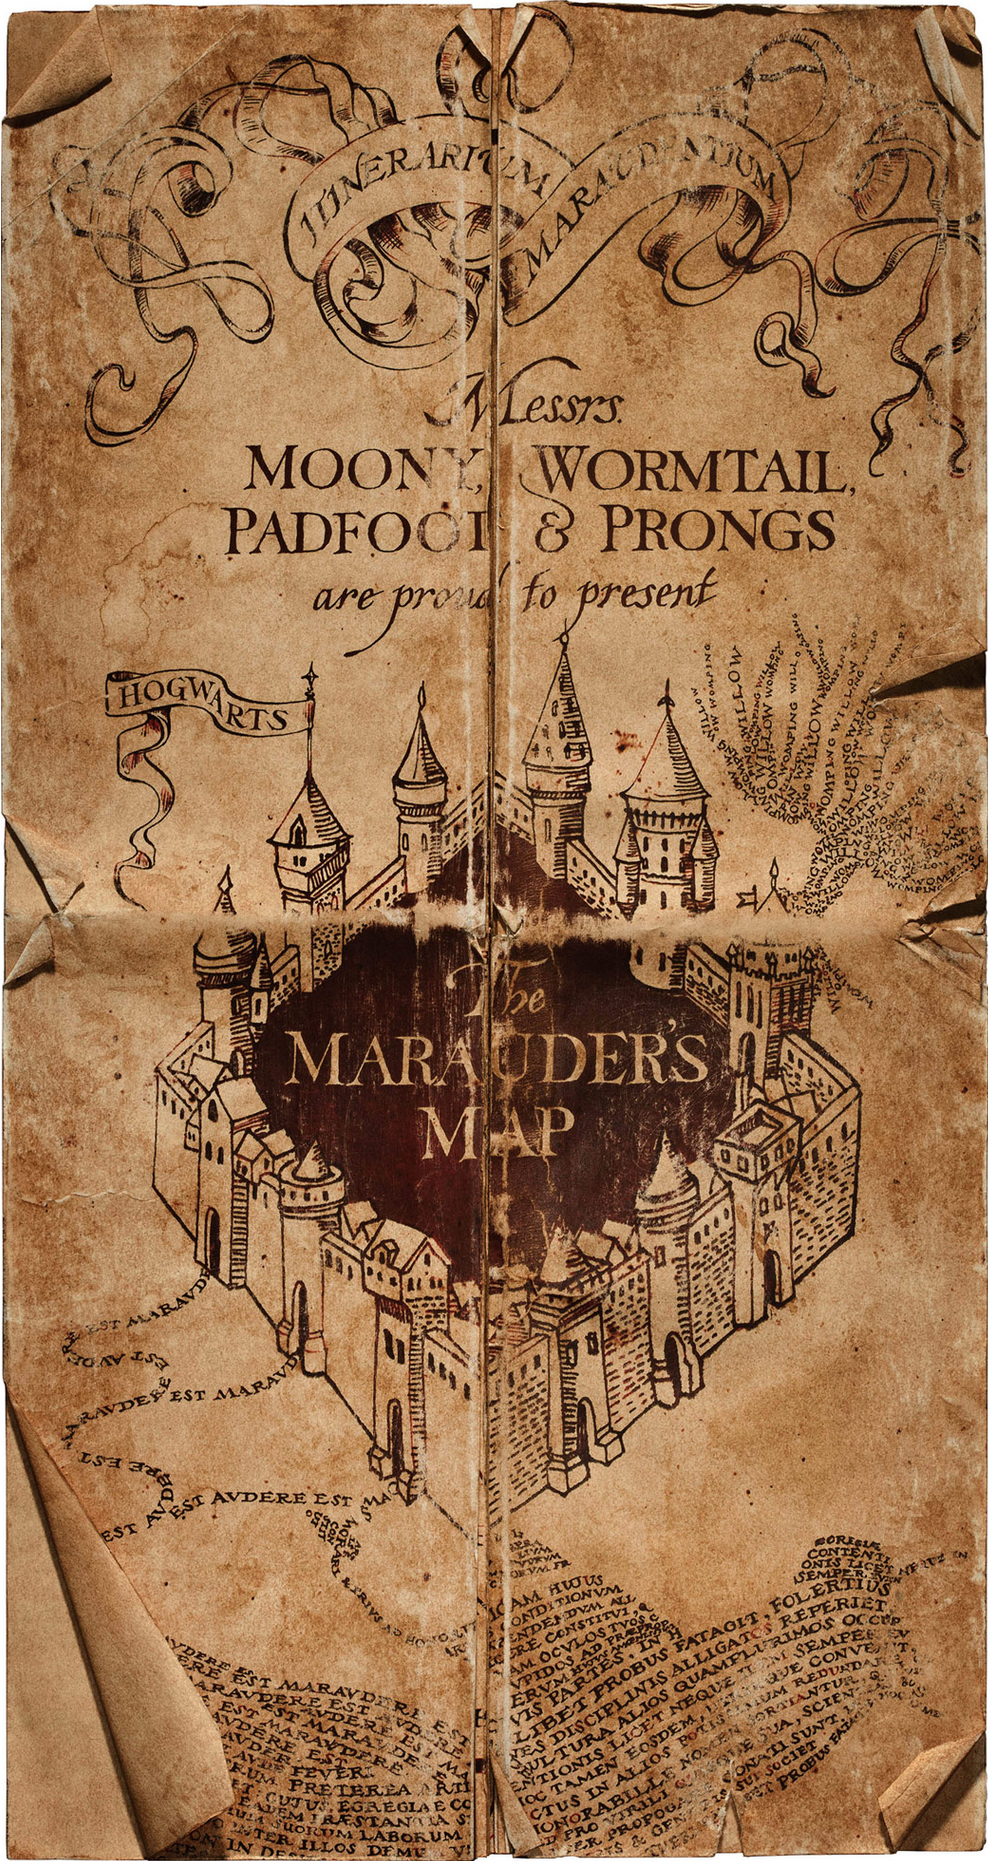 Marauders Map Harry Potter Marauder's Map | Harry Potter Wiki | FANDOM powered by Wikia Marauders Map Harry Potter